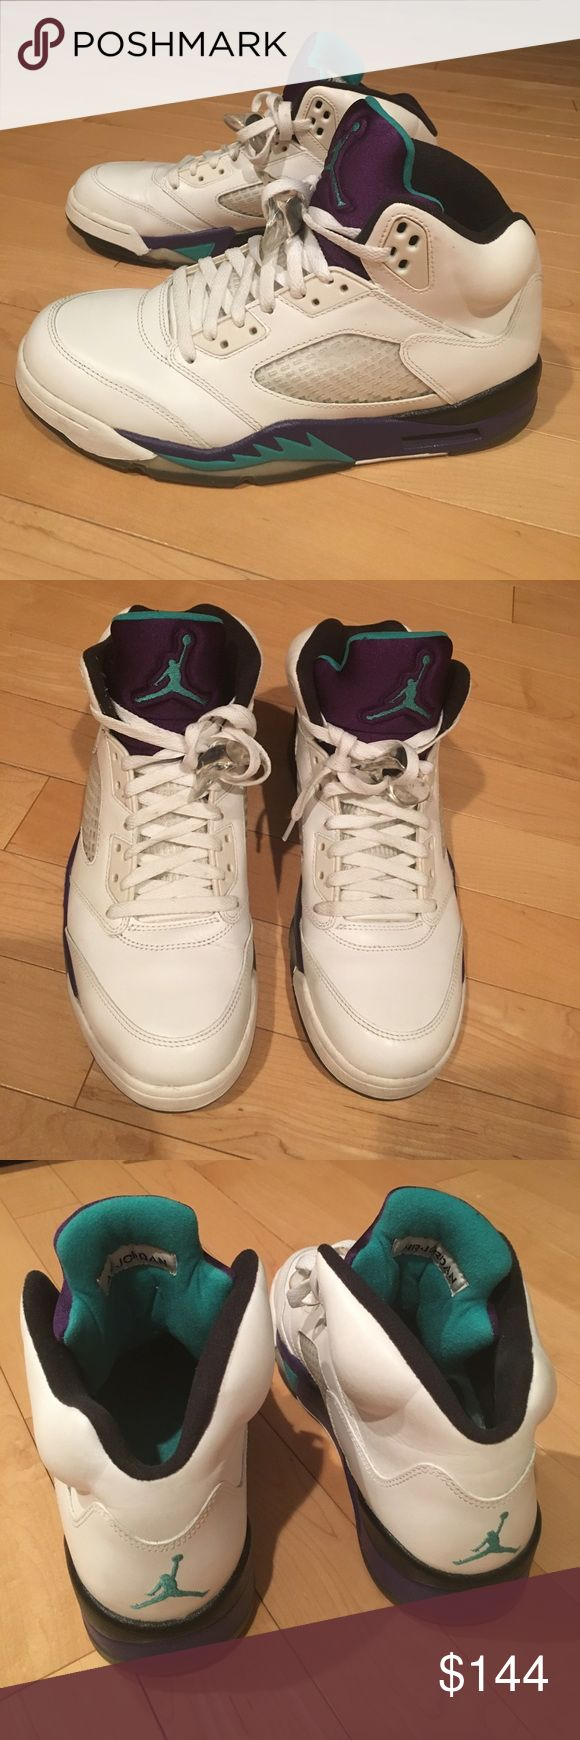 Jordan Grapes size 9 - 2013 release Jordan grapes 2013 release. Size 9. Good condition. 9/10 (light creases at toe box, no scuffs) Nike Shoes Sneakers